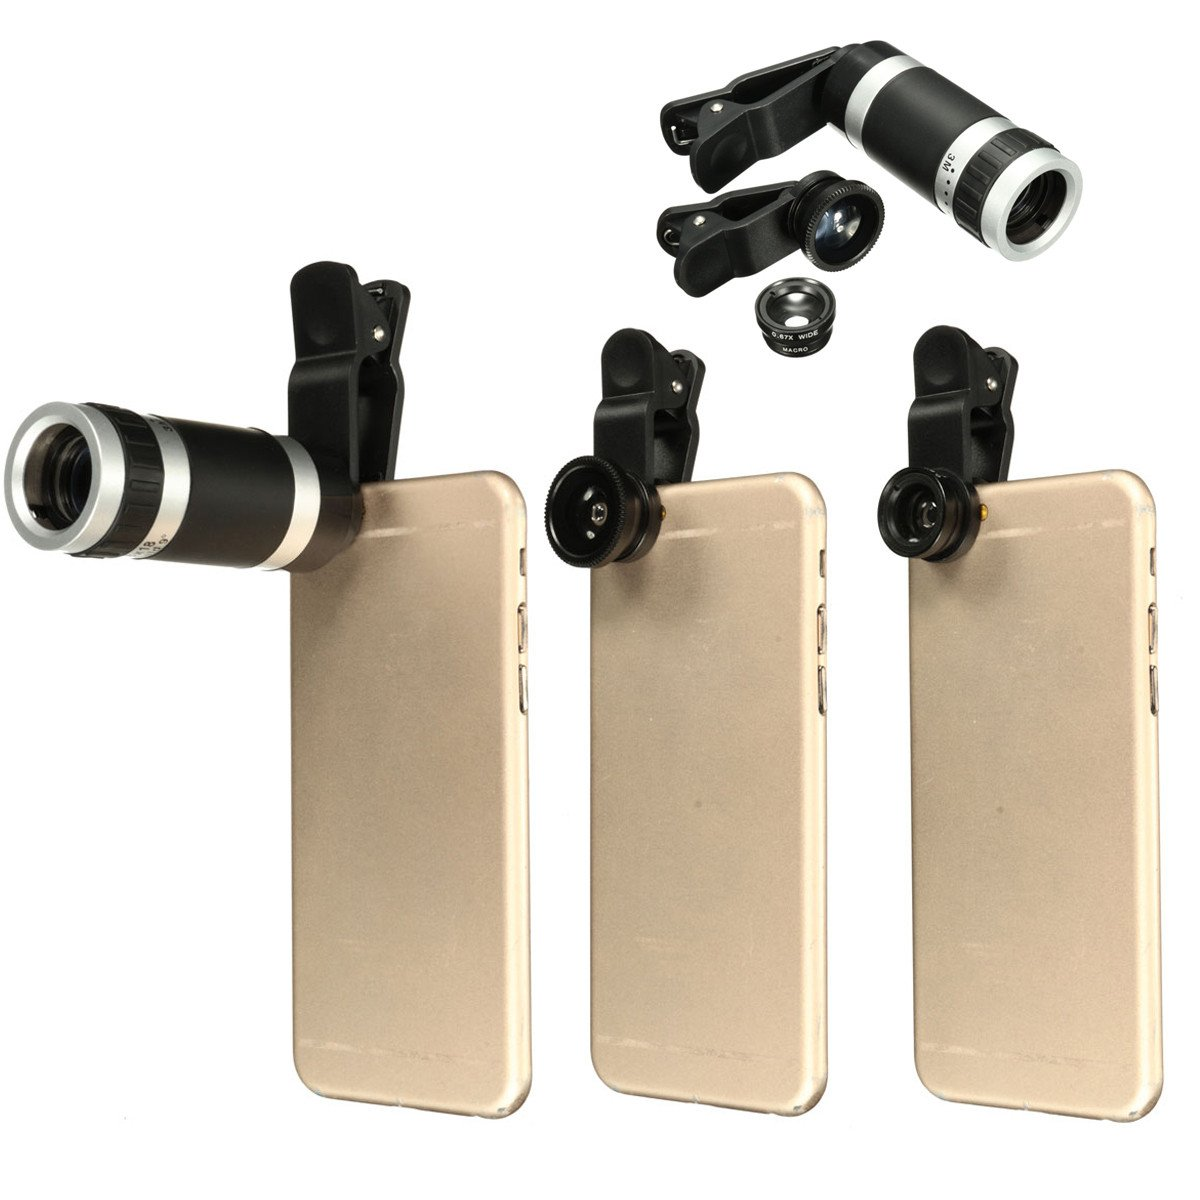 M.Way Universal 4 In 1 Clip-On Cell Phone Lens Kit Fisheye + Wide Angle + 8X .. 14